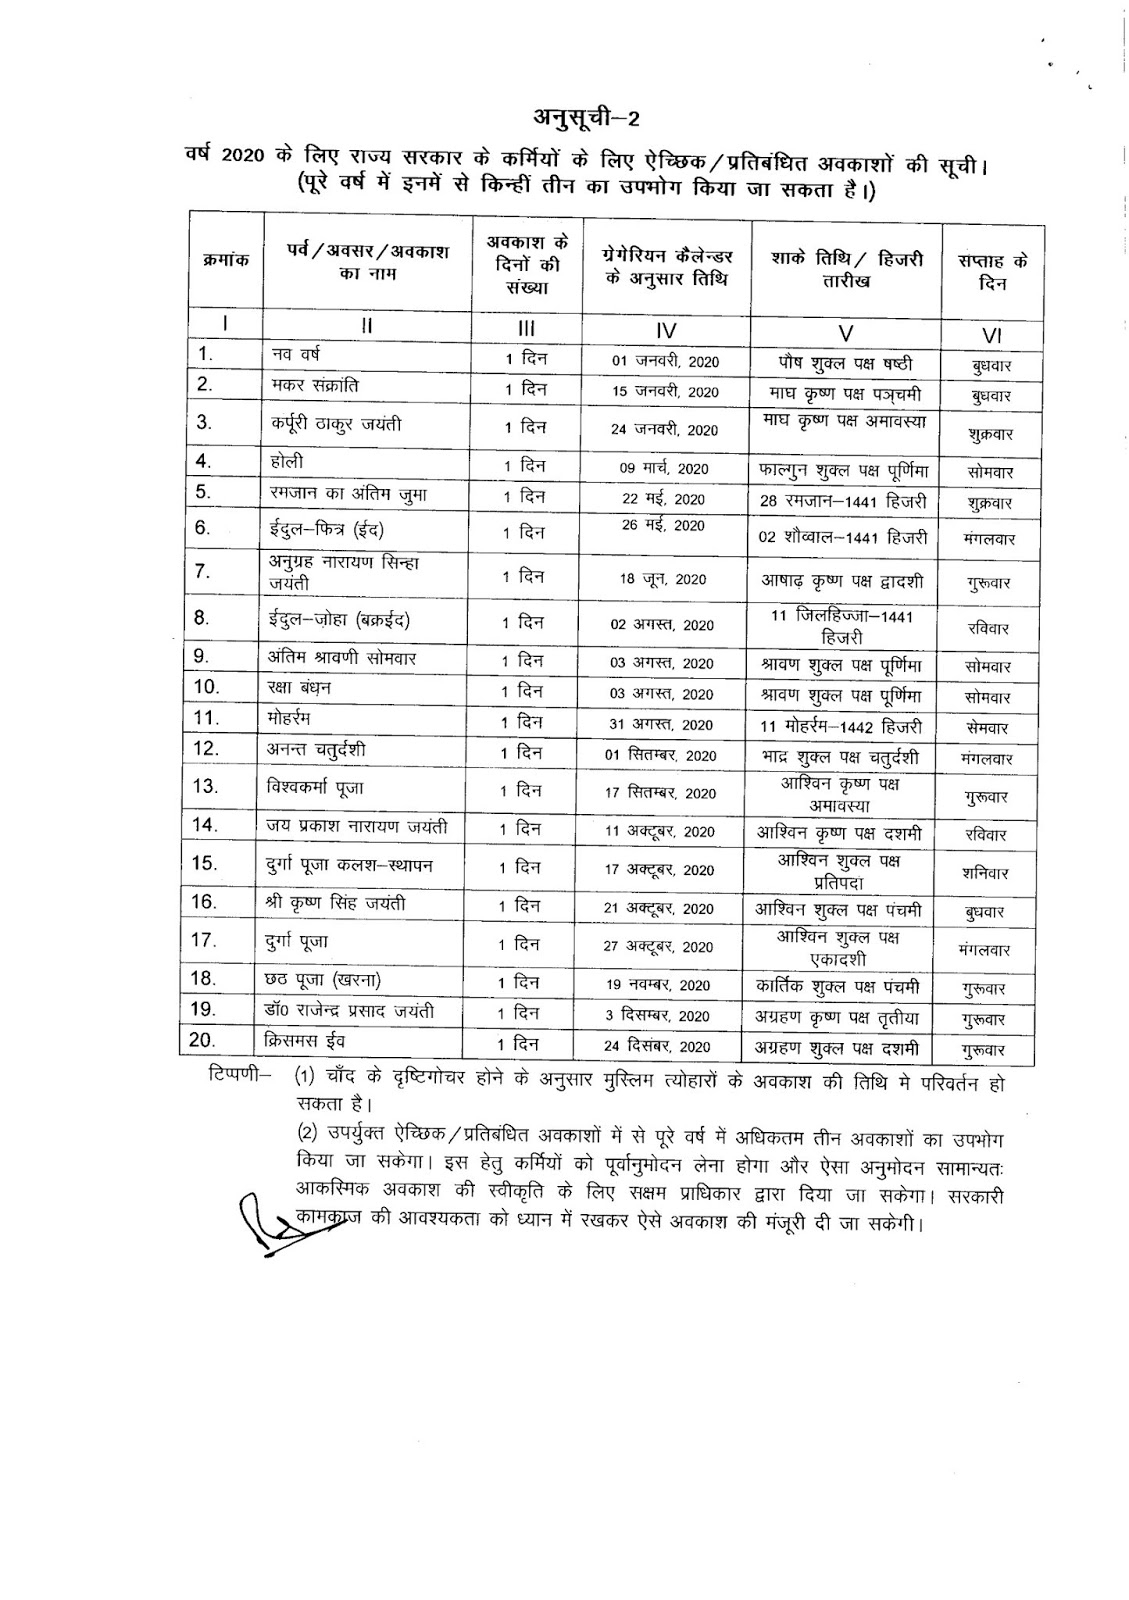 Bihar Government Calendar 2020 #educratsweb with regard to Bihar Sarkar Clender